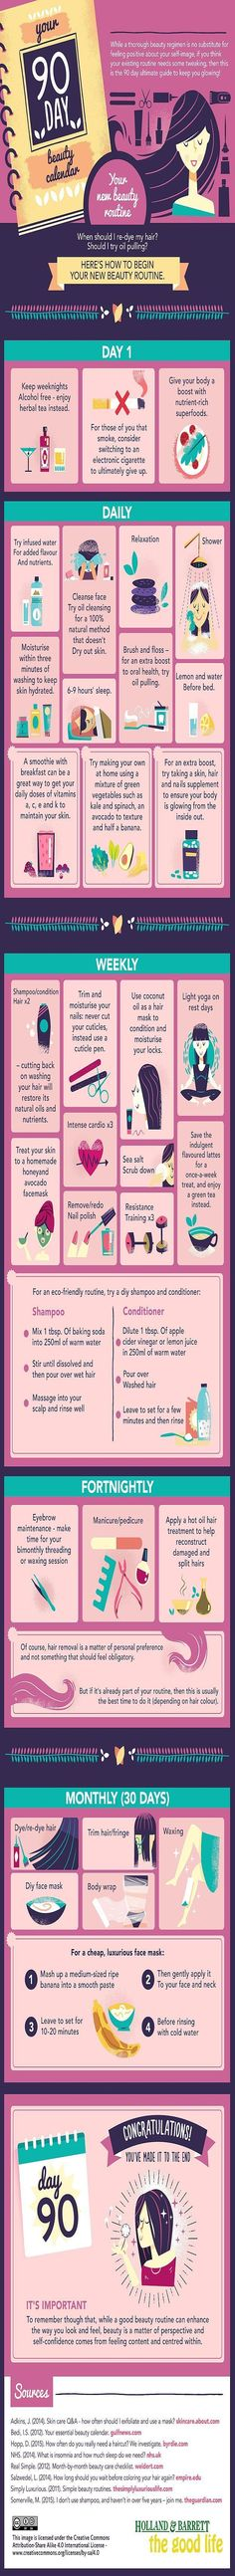 90-Day Guide to Better Skin & Health http://makeuptutorials.com/90-day-glam-guide-makeup-tutorials/